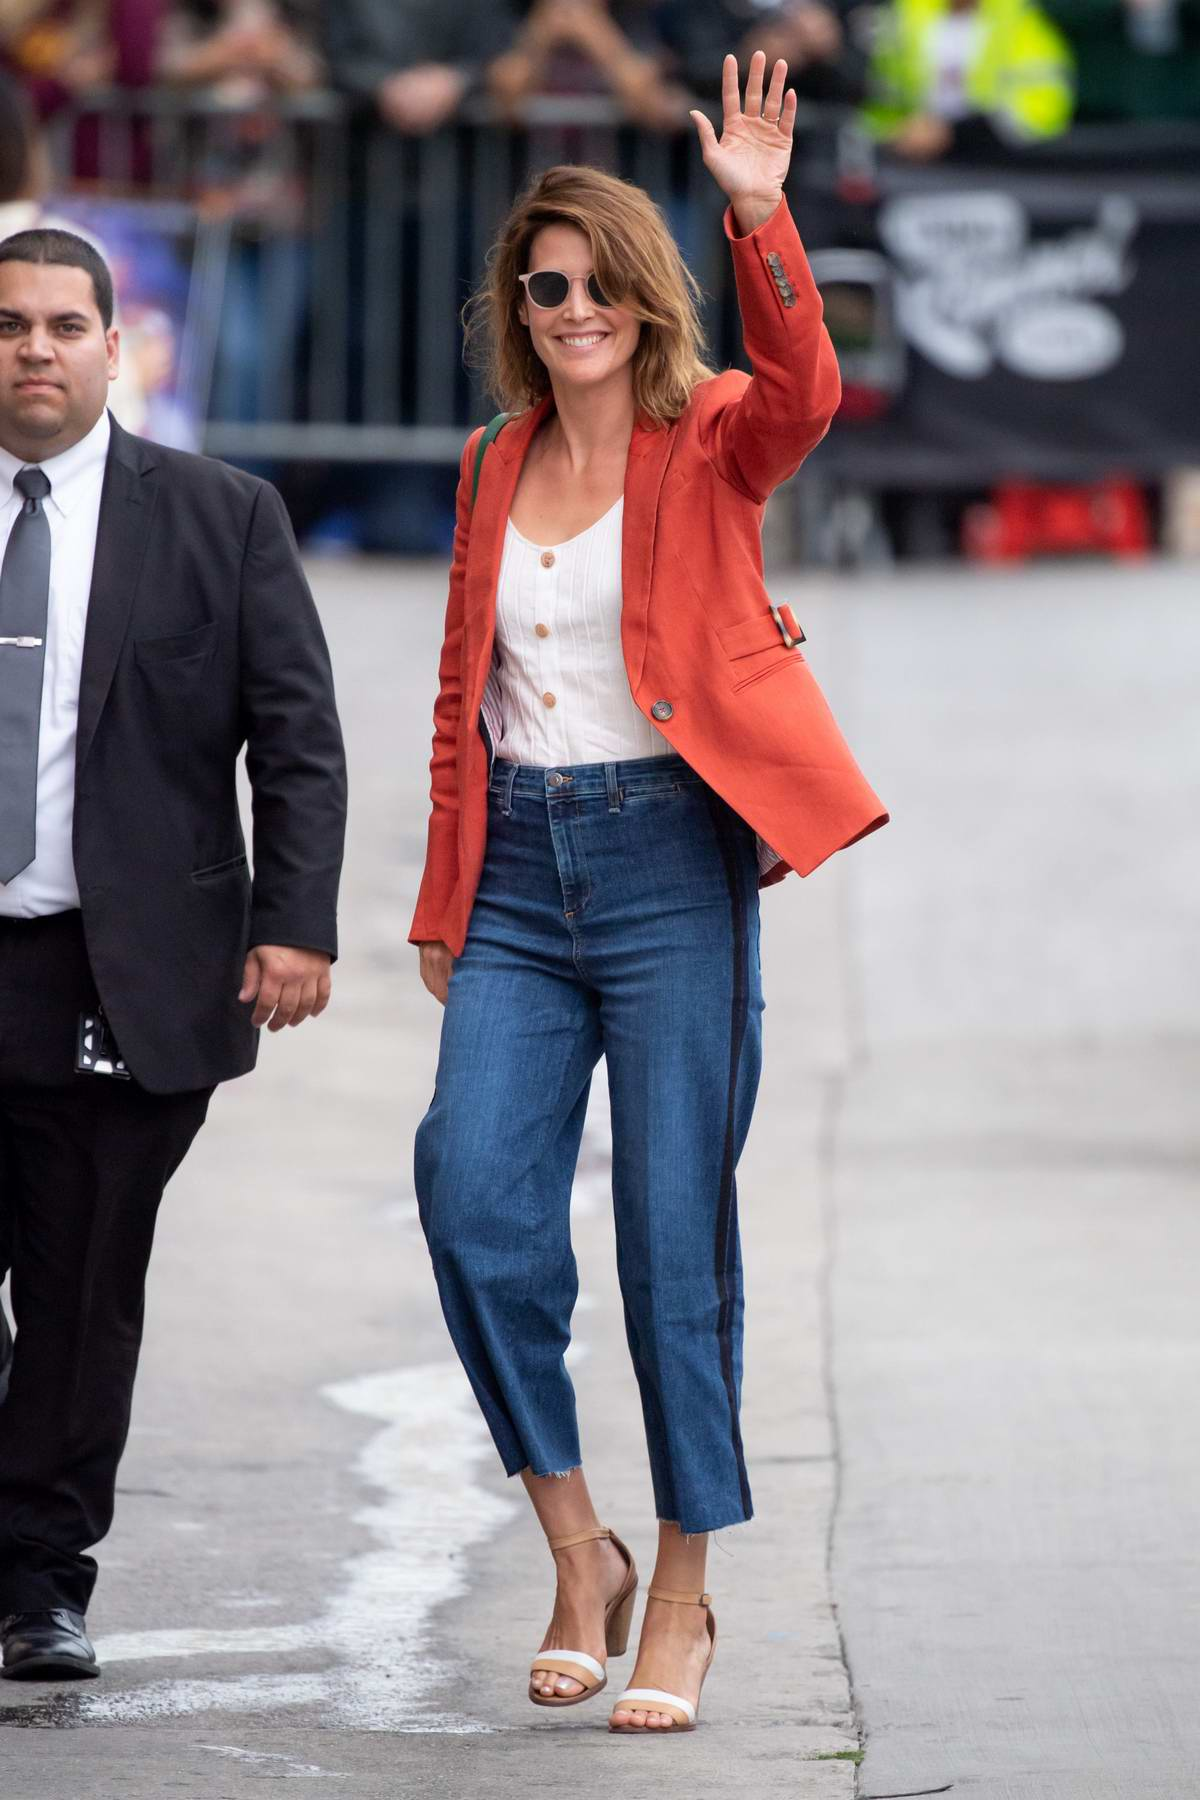 Cobie Smulders is all smiles as she arrives for an appearance on Jimmy Kimmel Live! in Hollywood, California